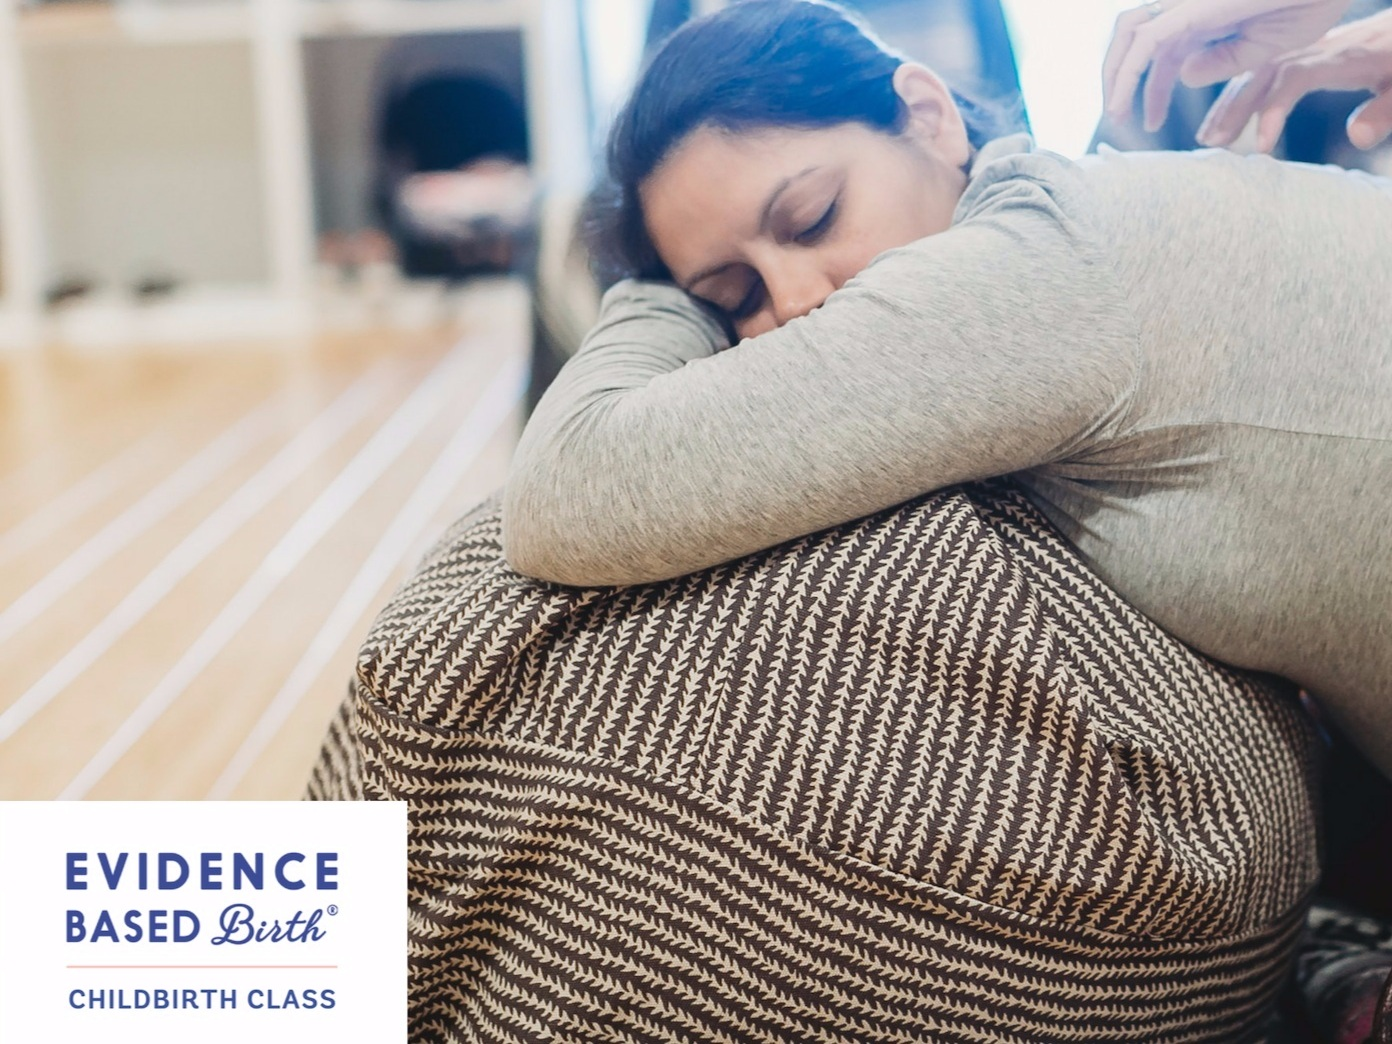 Evidence Based Birth® Childbirth Class - Get Empowered with a class that you and your partner will love! In this unique online and in person hybrid course, you and your partner will benefit from the convenience of online learning and also be mentored through the process of preparing for your birth as well as meeting other people who are going through the same thing!